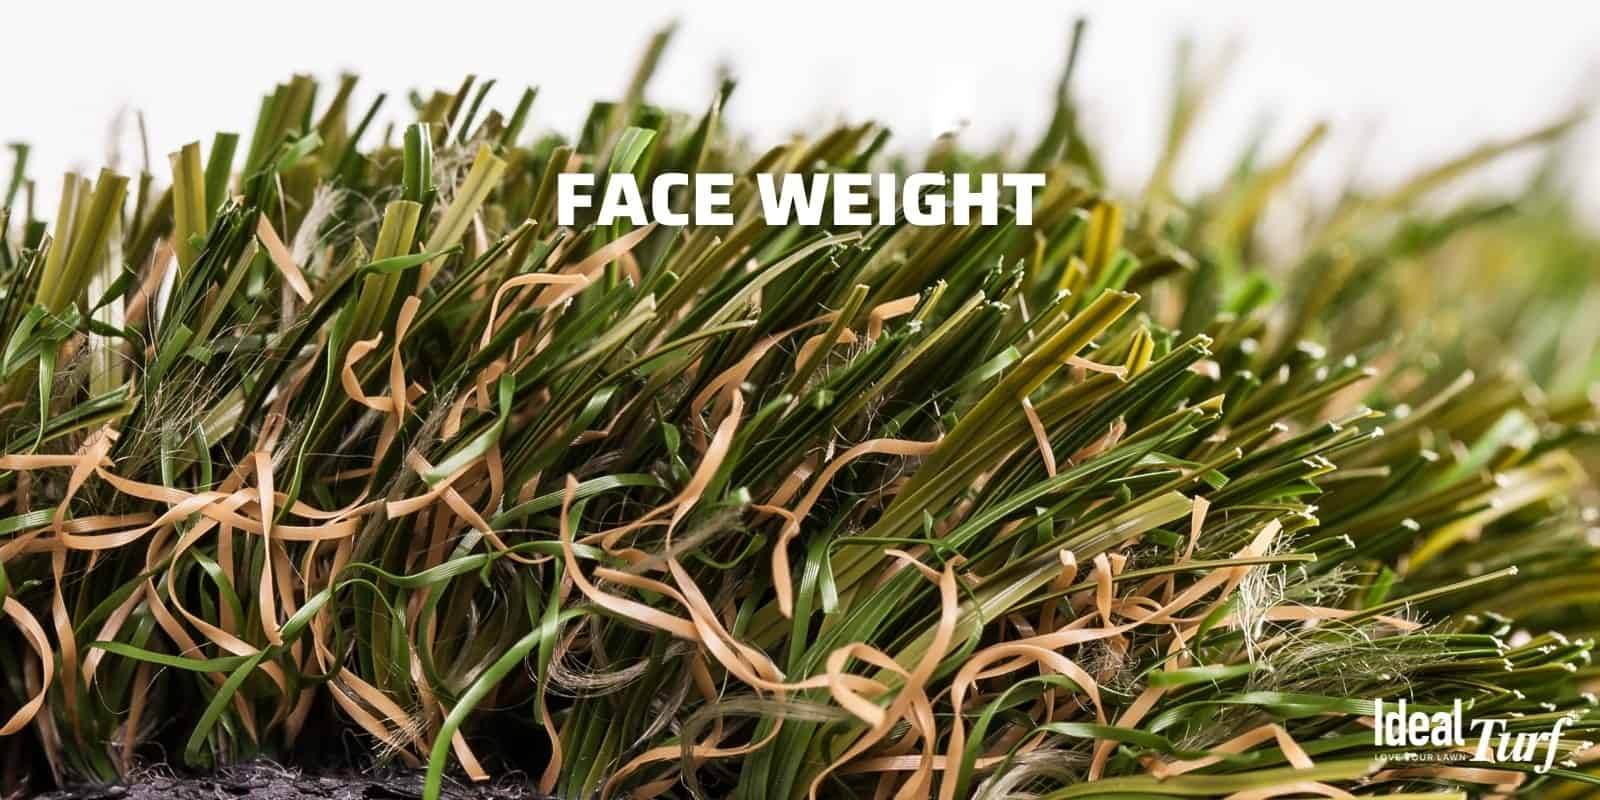 Closeup of turf product to show the face weight